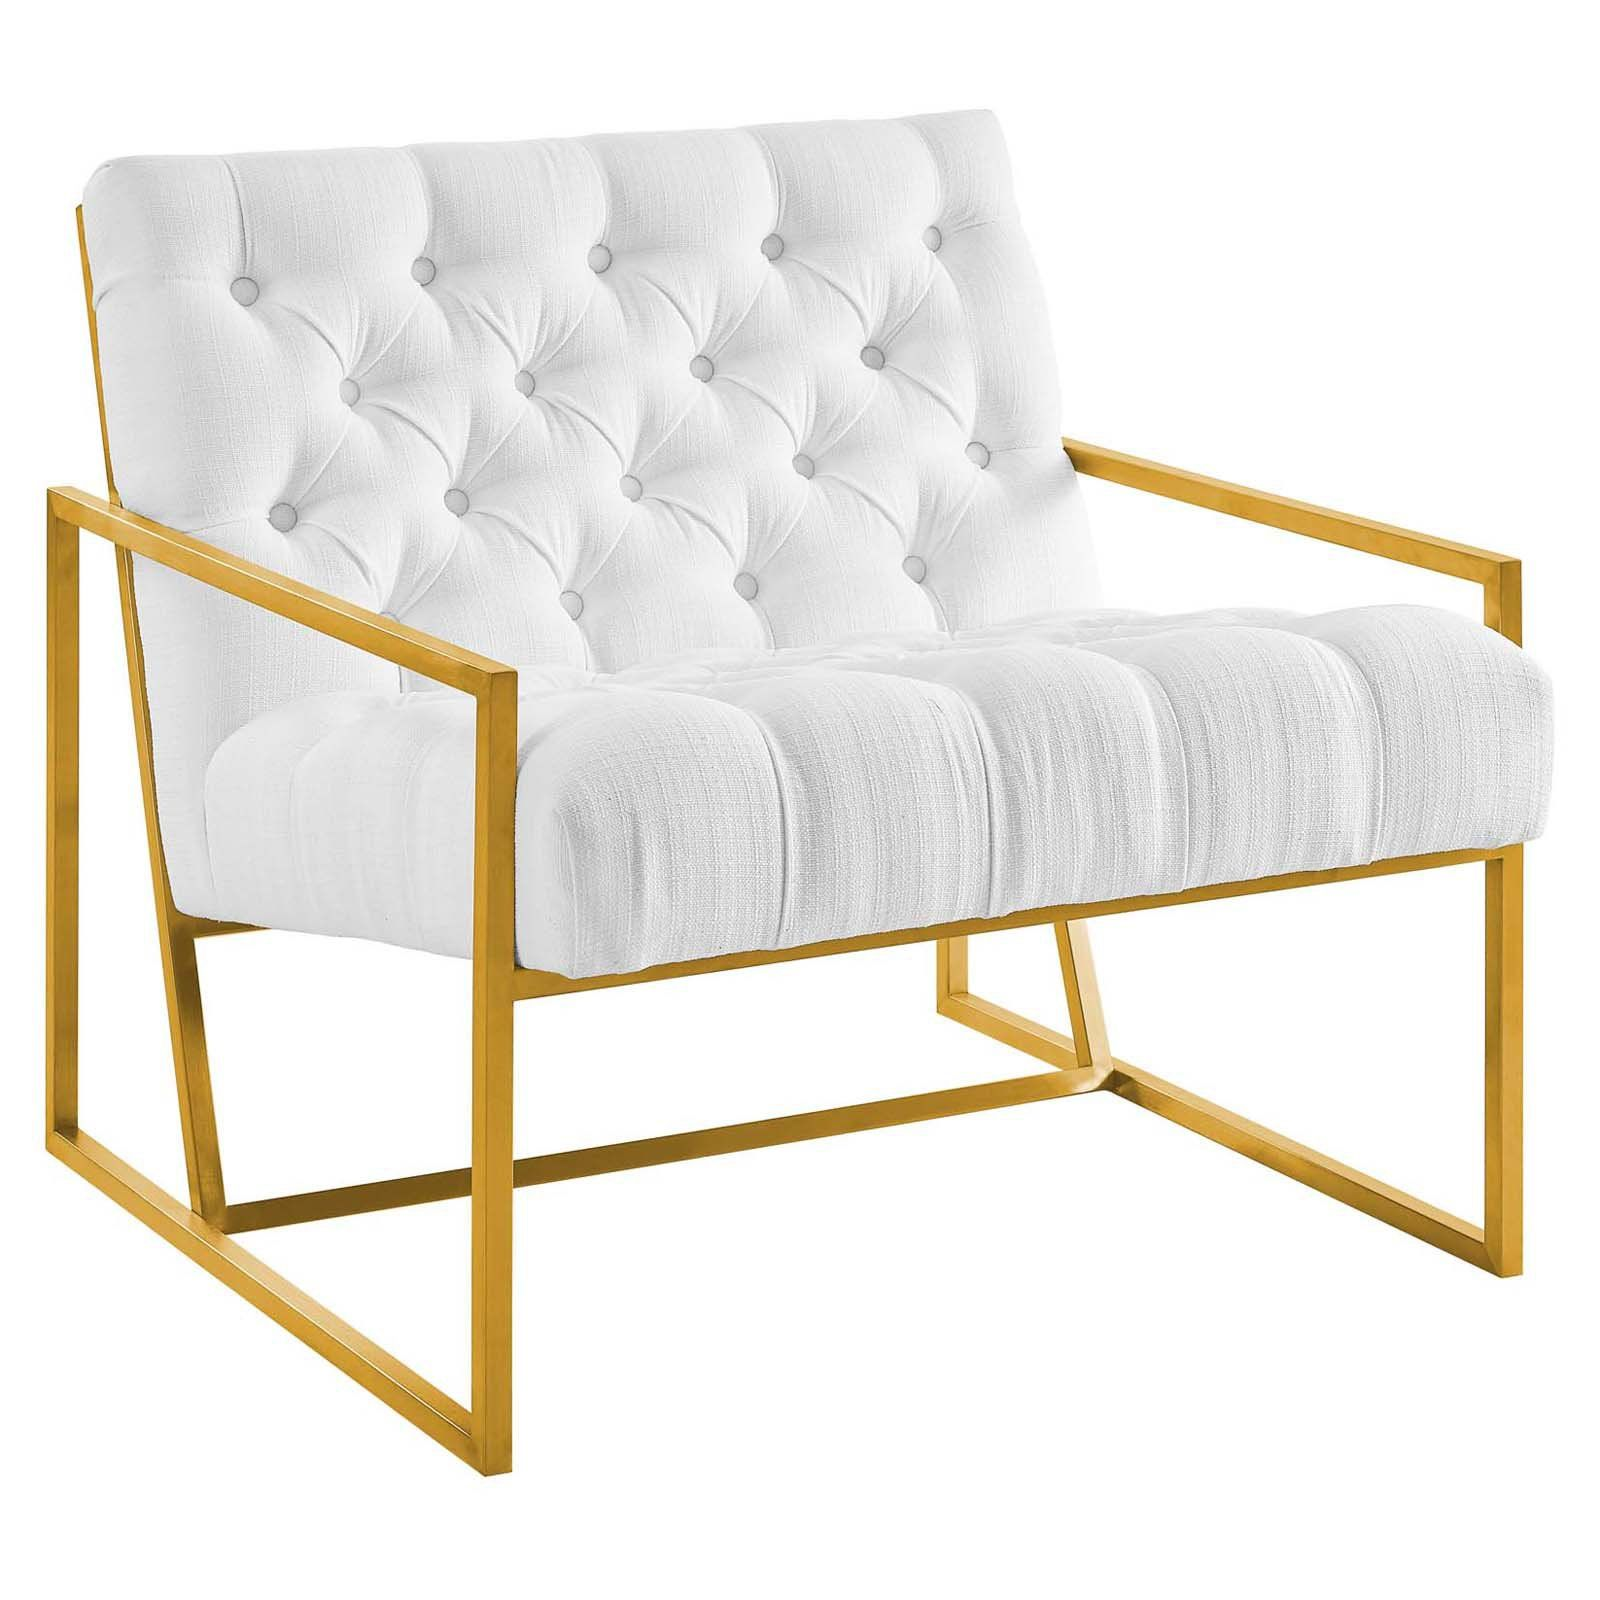 Swell Modway Bequest Gold Stainless Steel Upholstered Fabric Ibusinesslaw Wood Chair Design Ideas Ibusinesslaworg